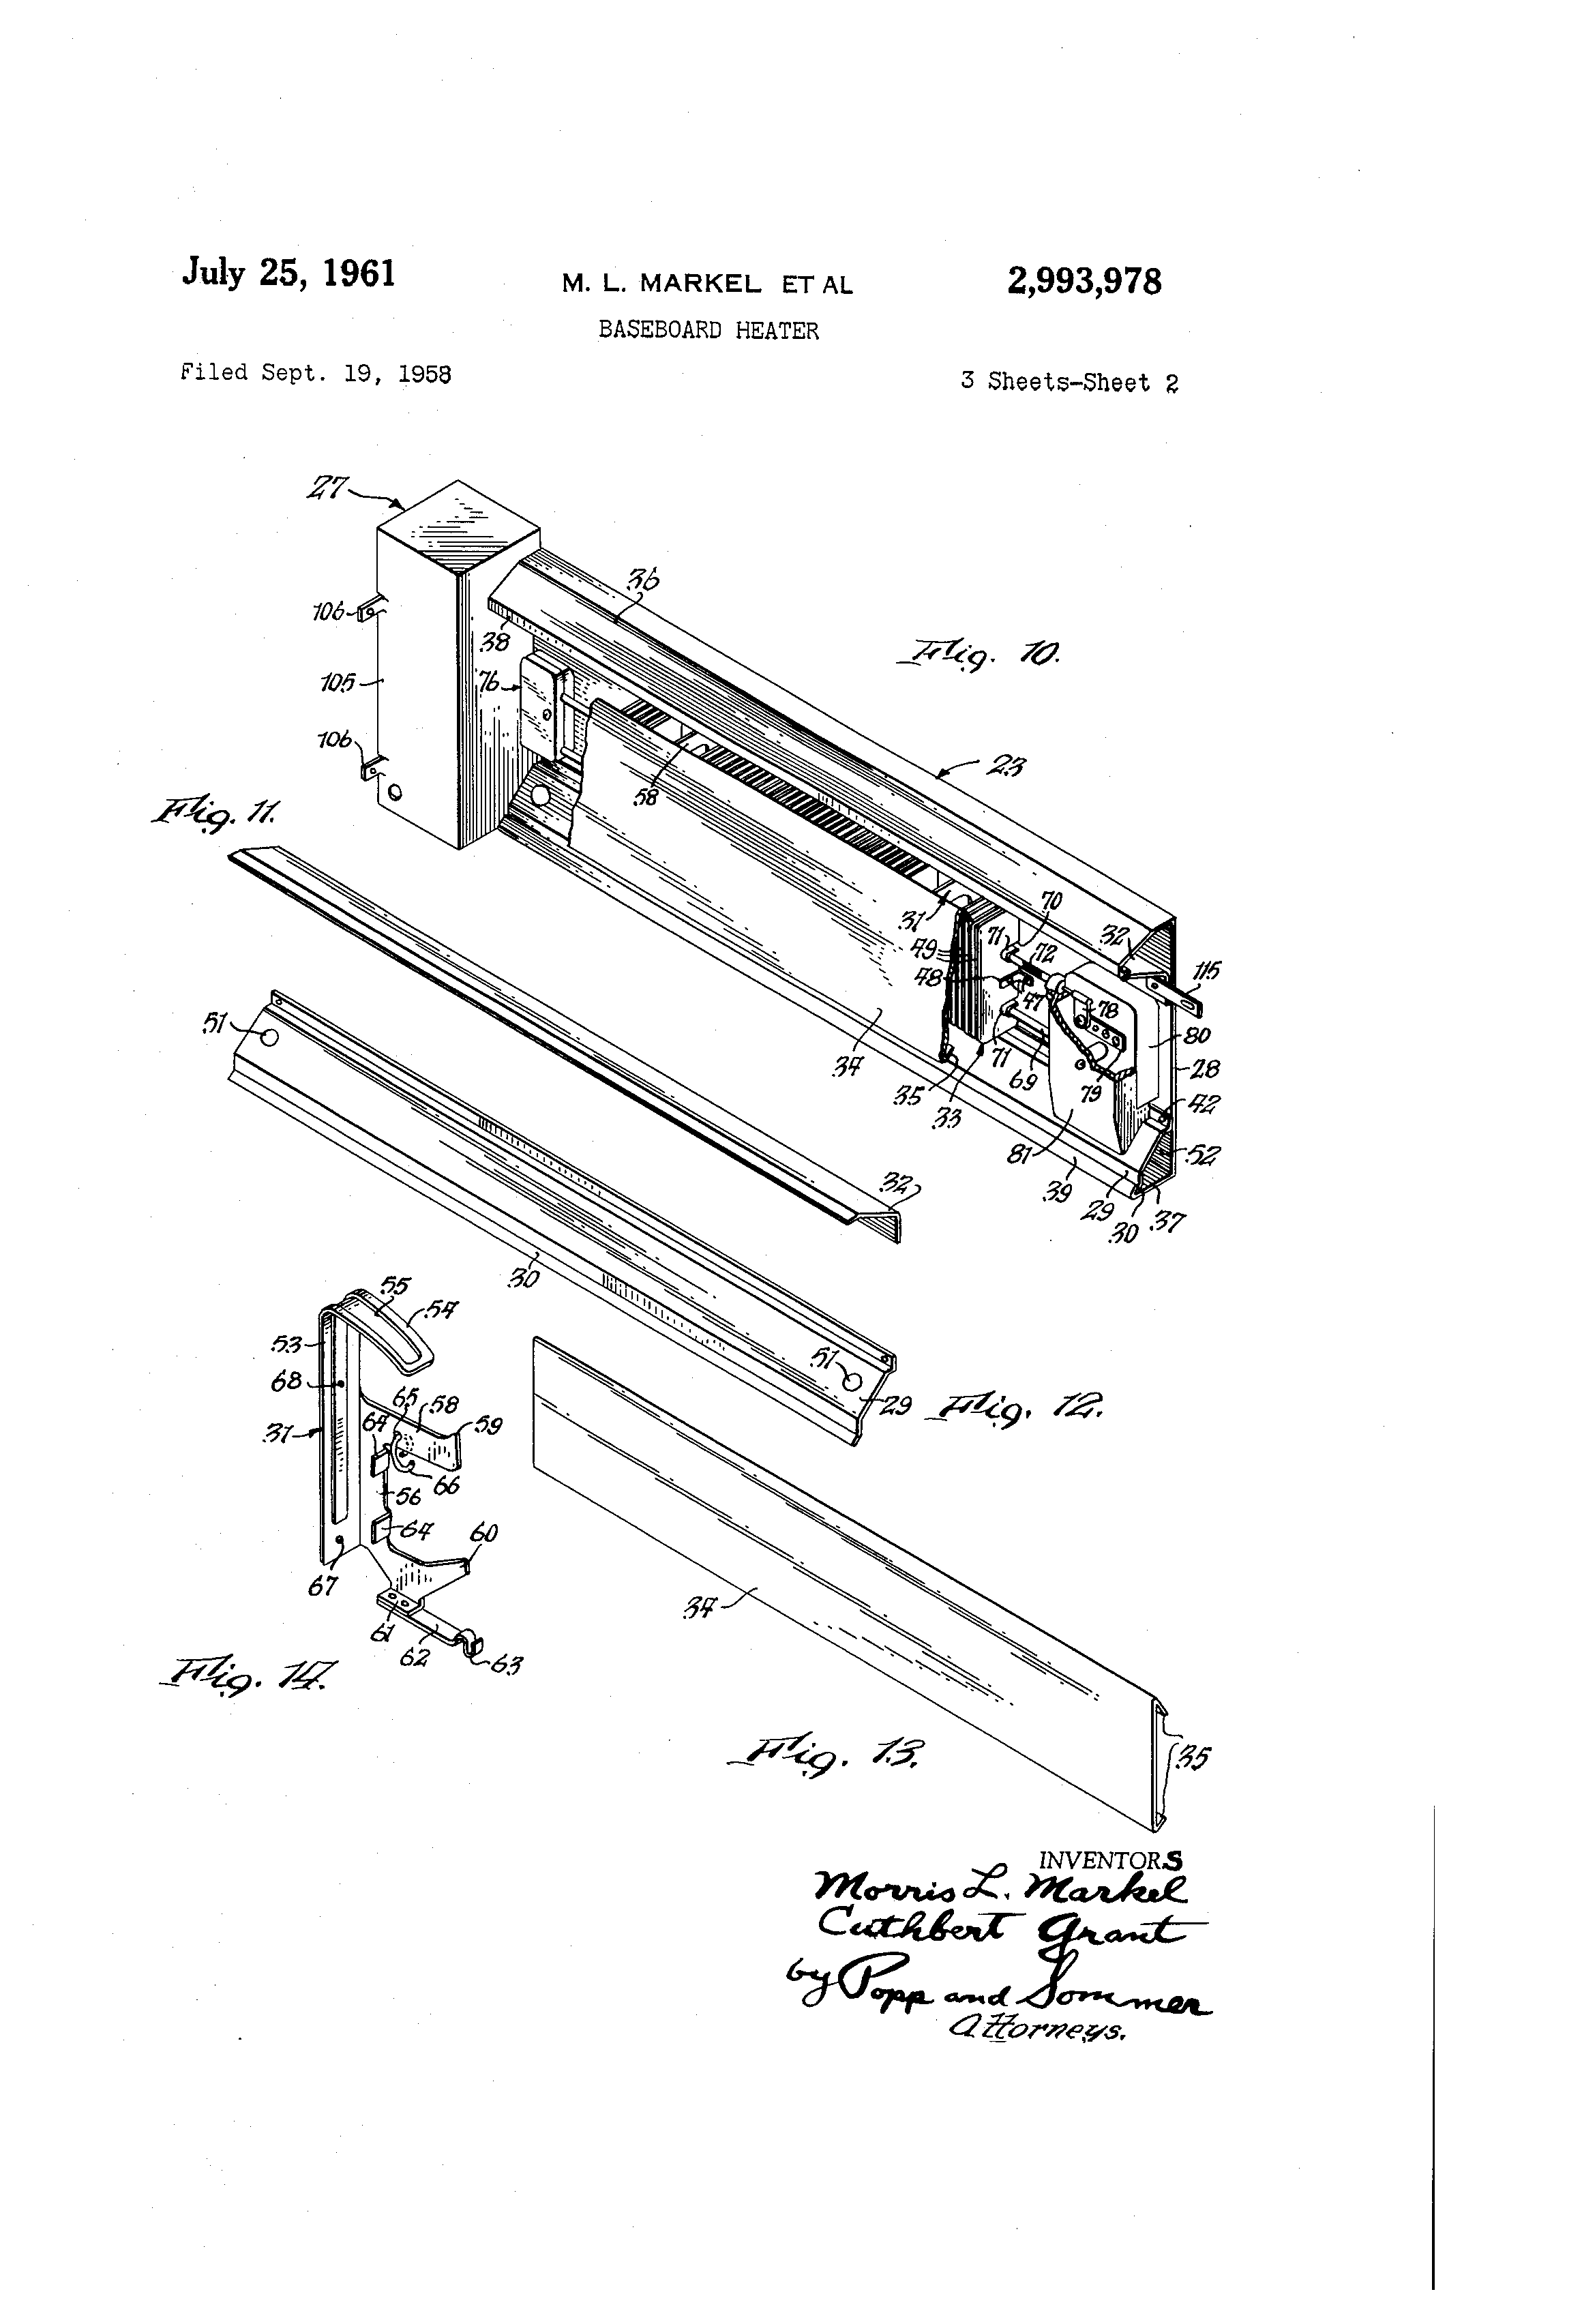 patent us2993978 - baseboard heater